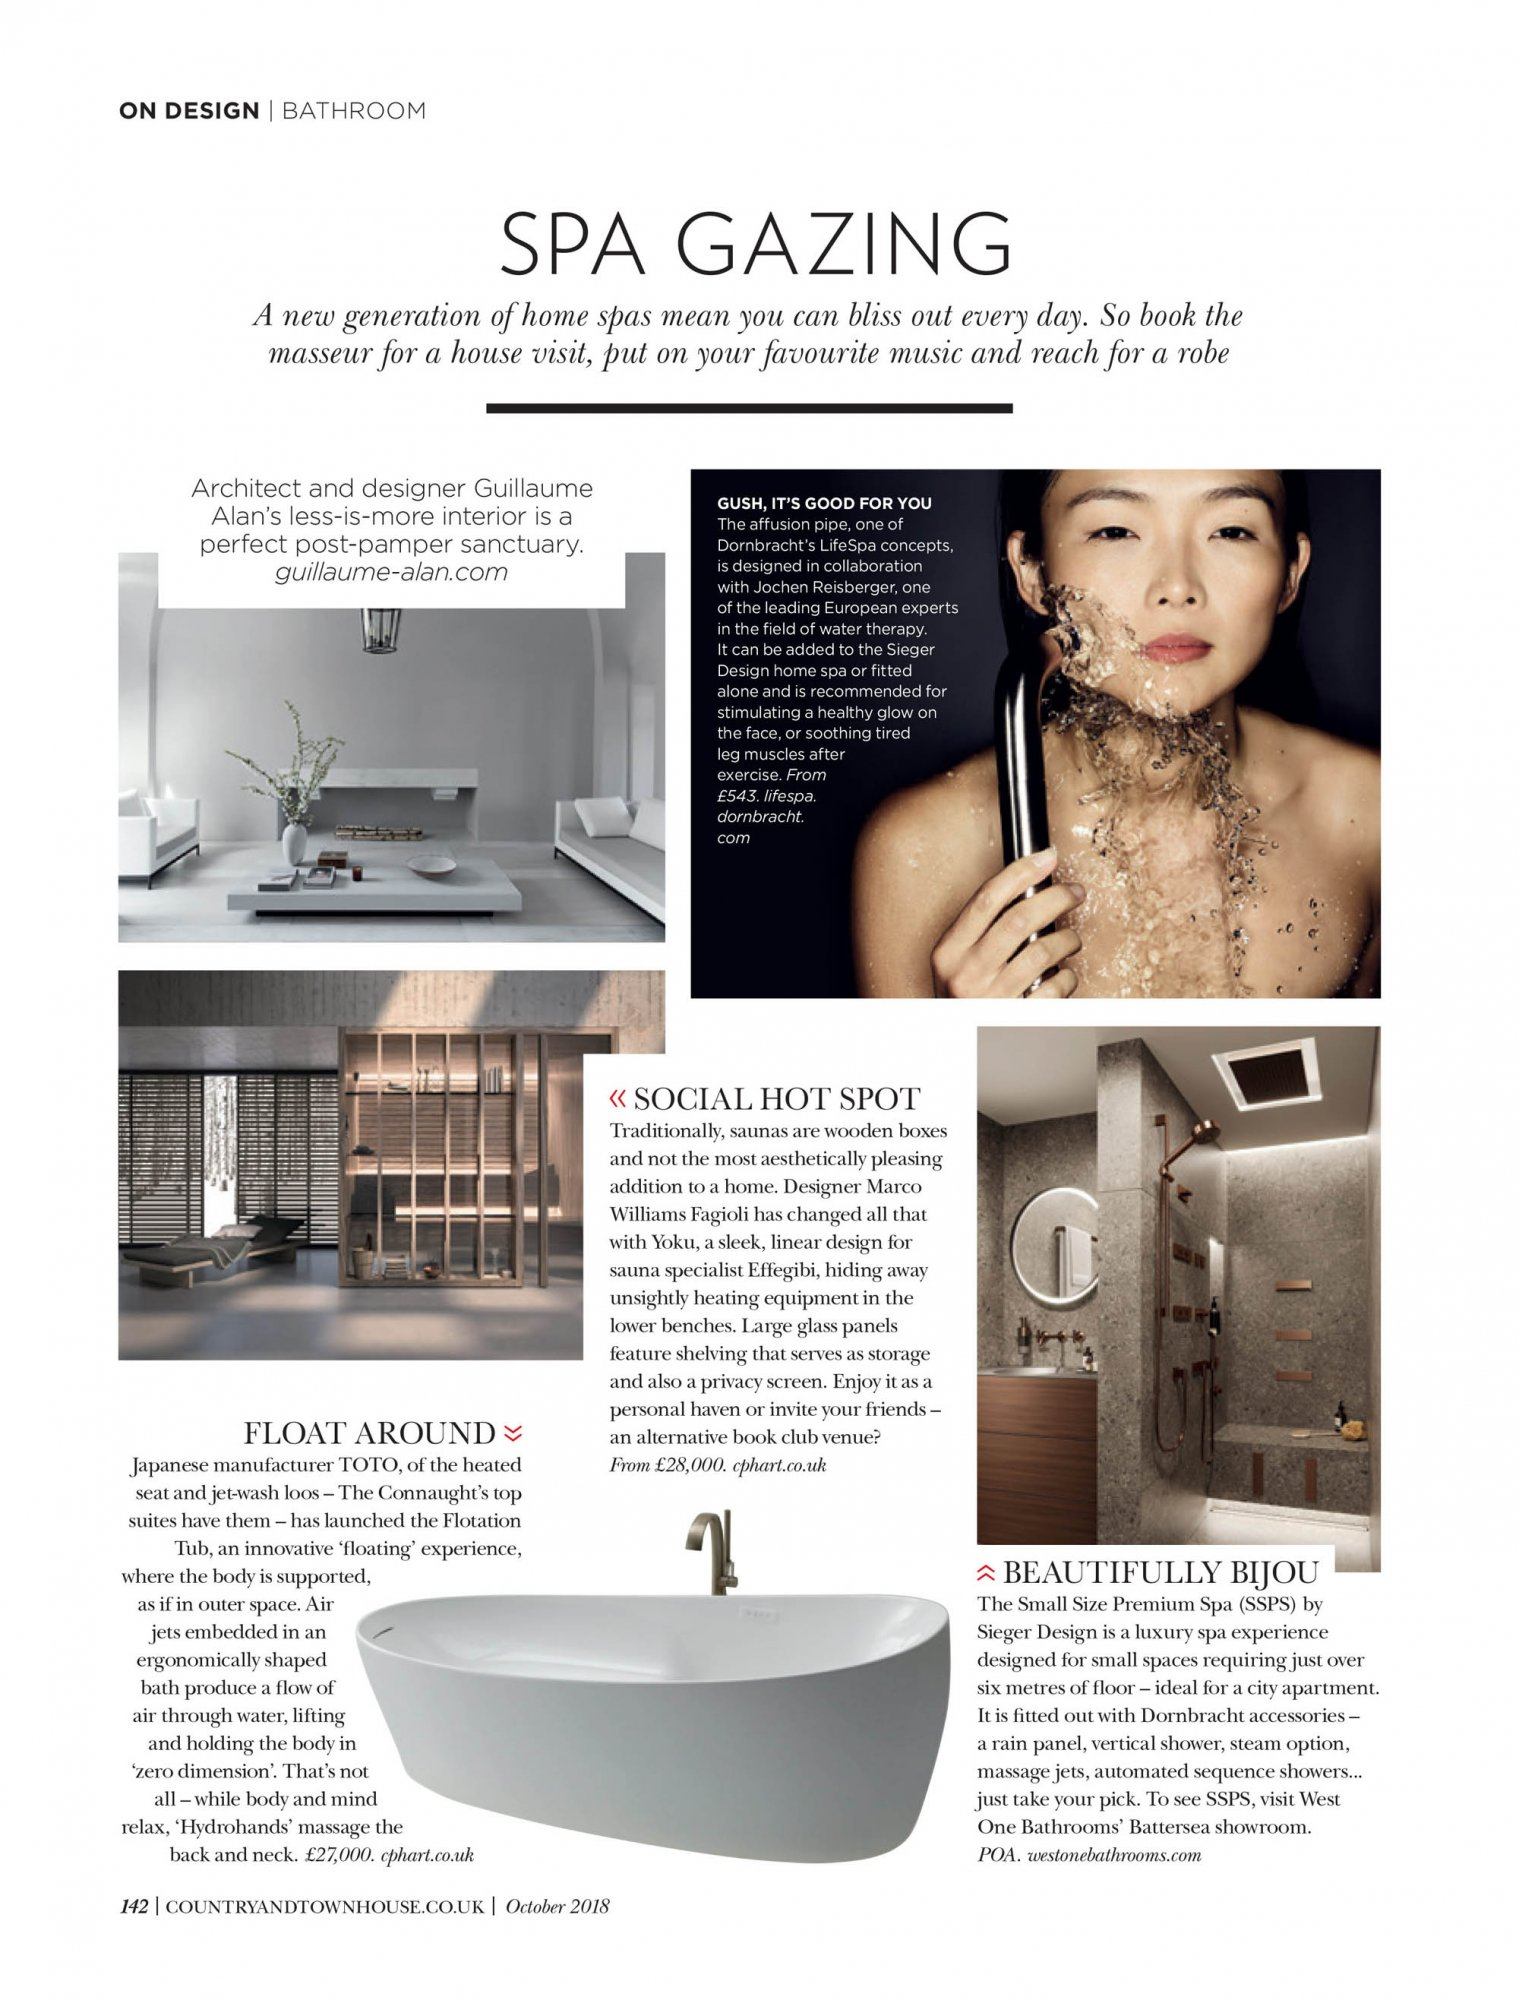 West One Bathrooms Country and Townhouse October 2018 Spa Gazing